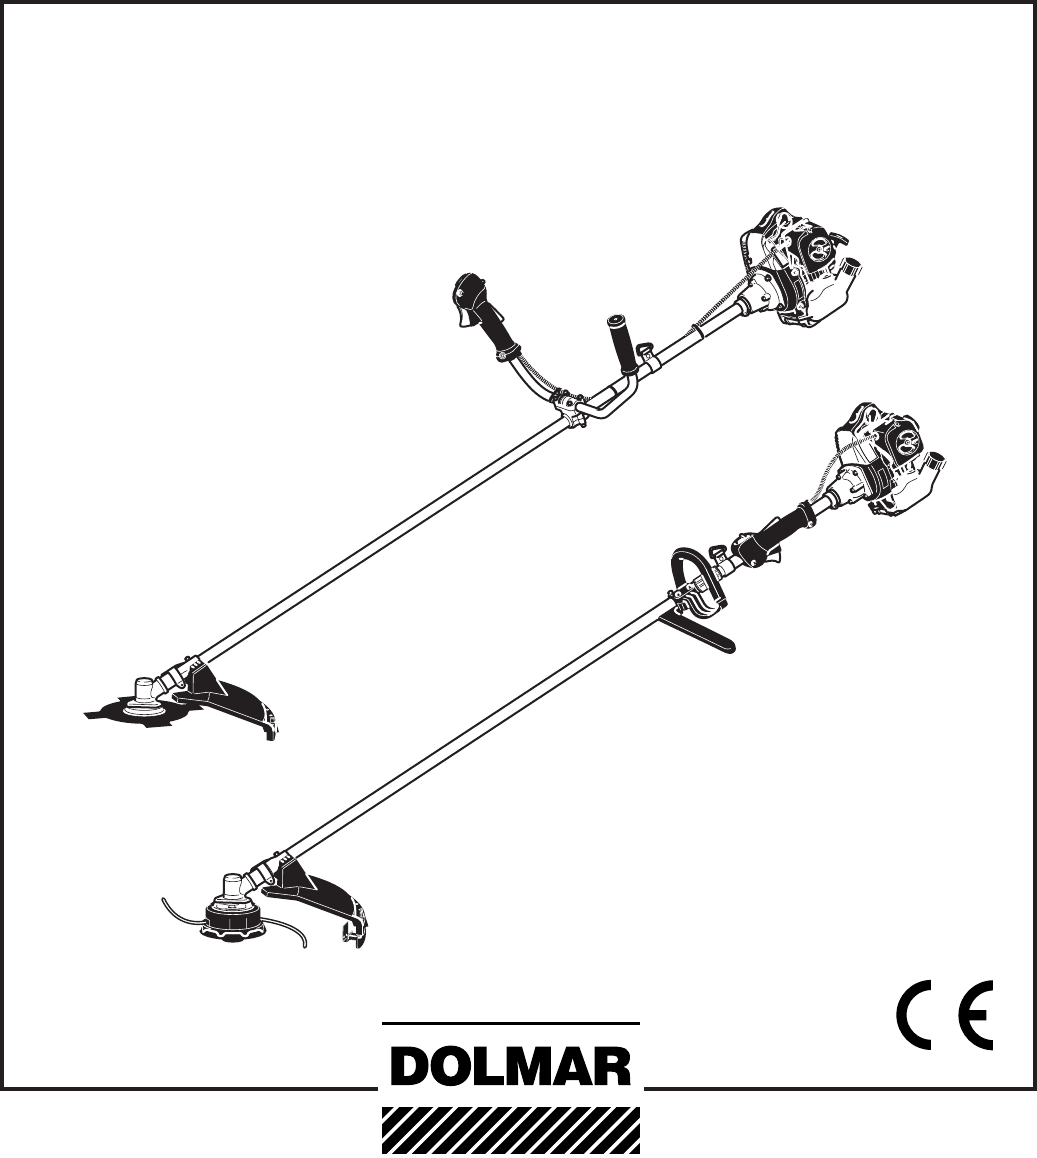 Dolmar Brush Cutter MS-260 U, MS-330 U, MS-430 U, MS-230 C